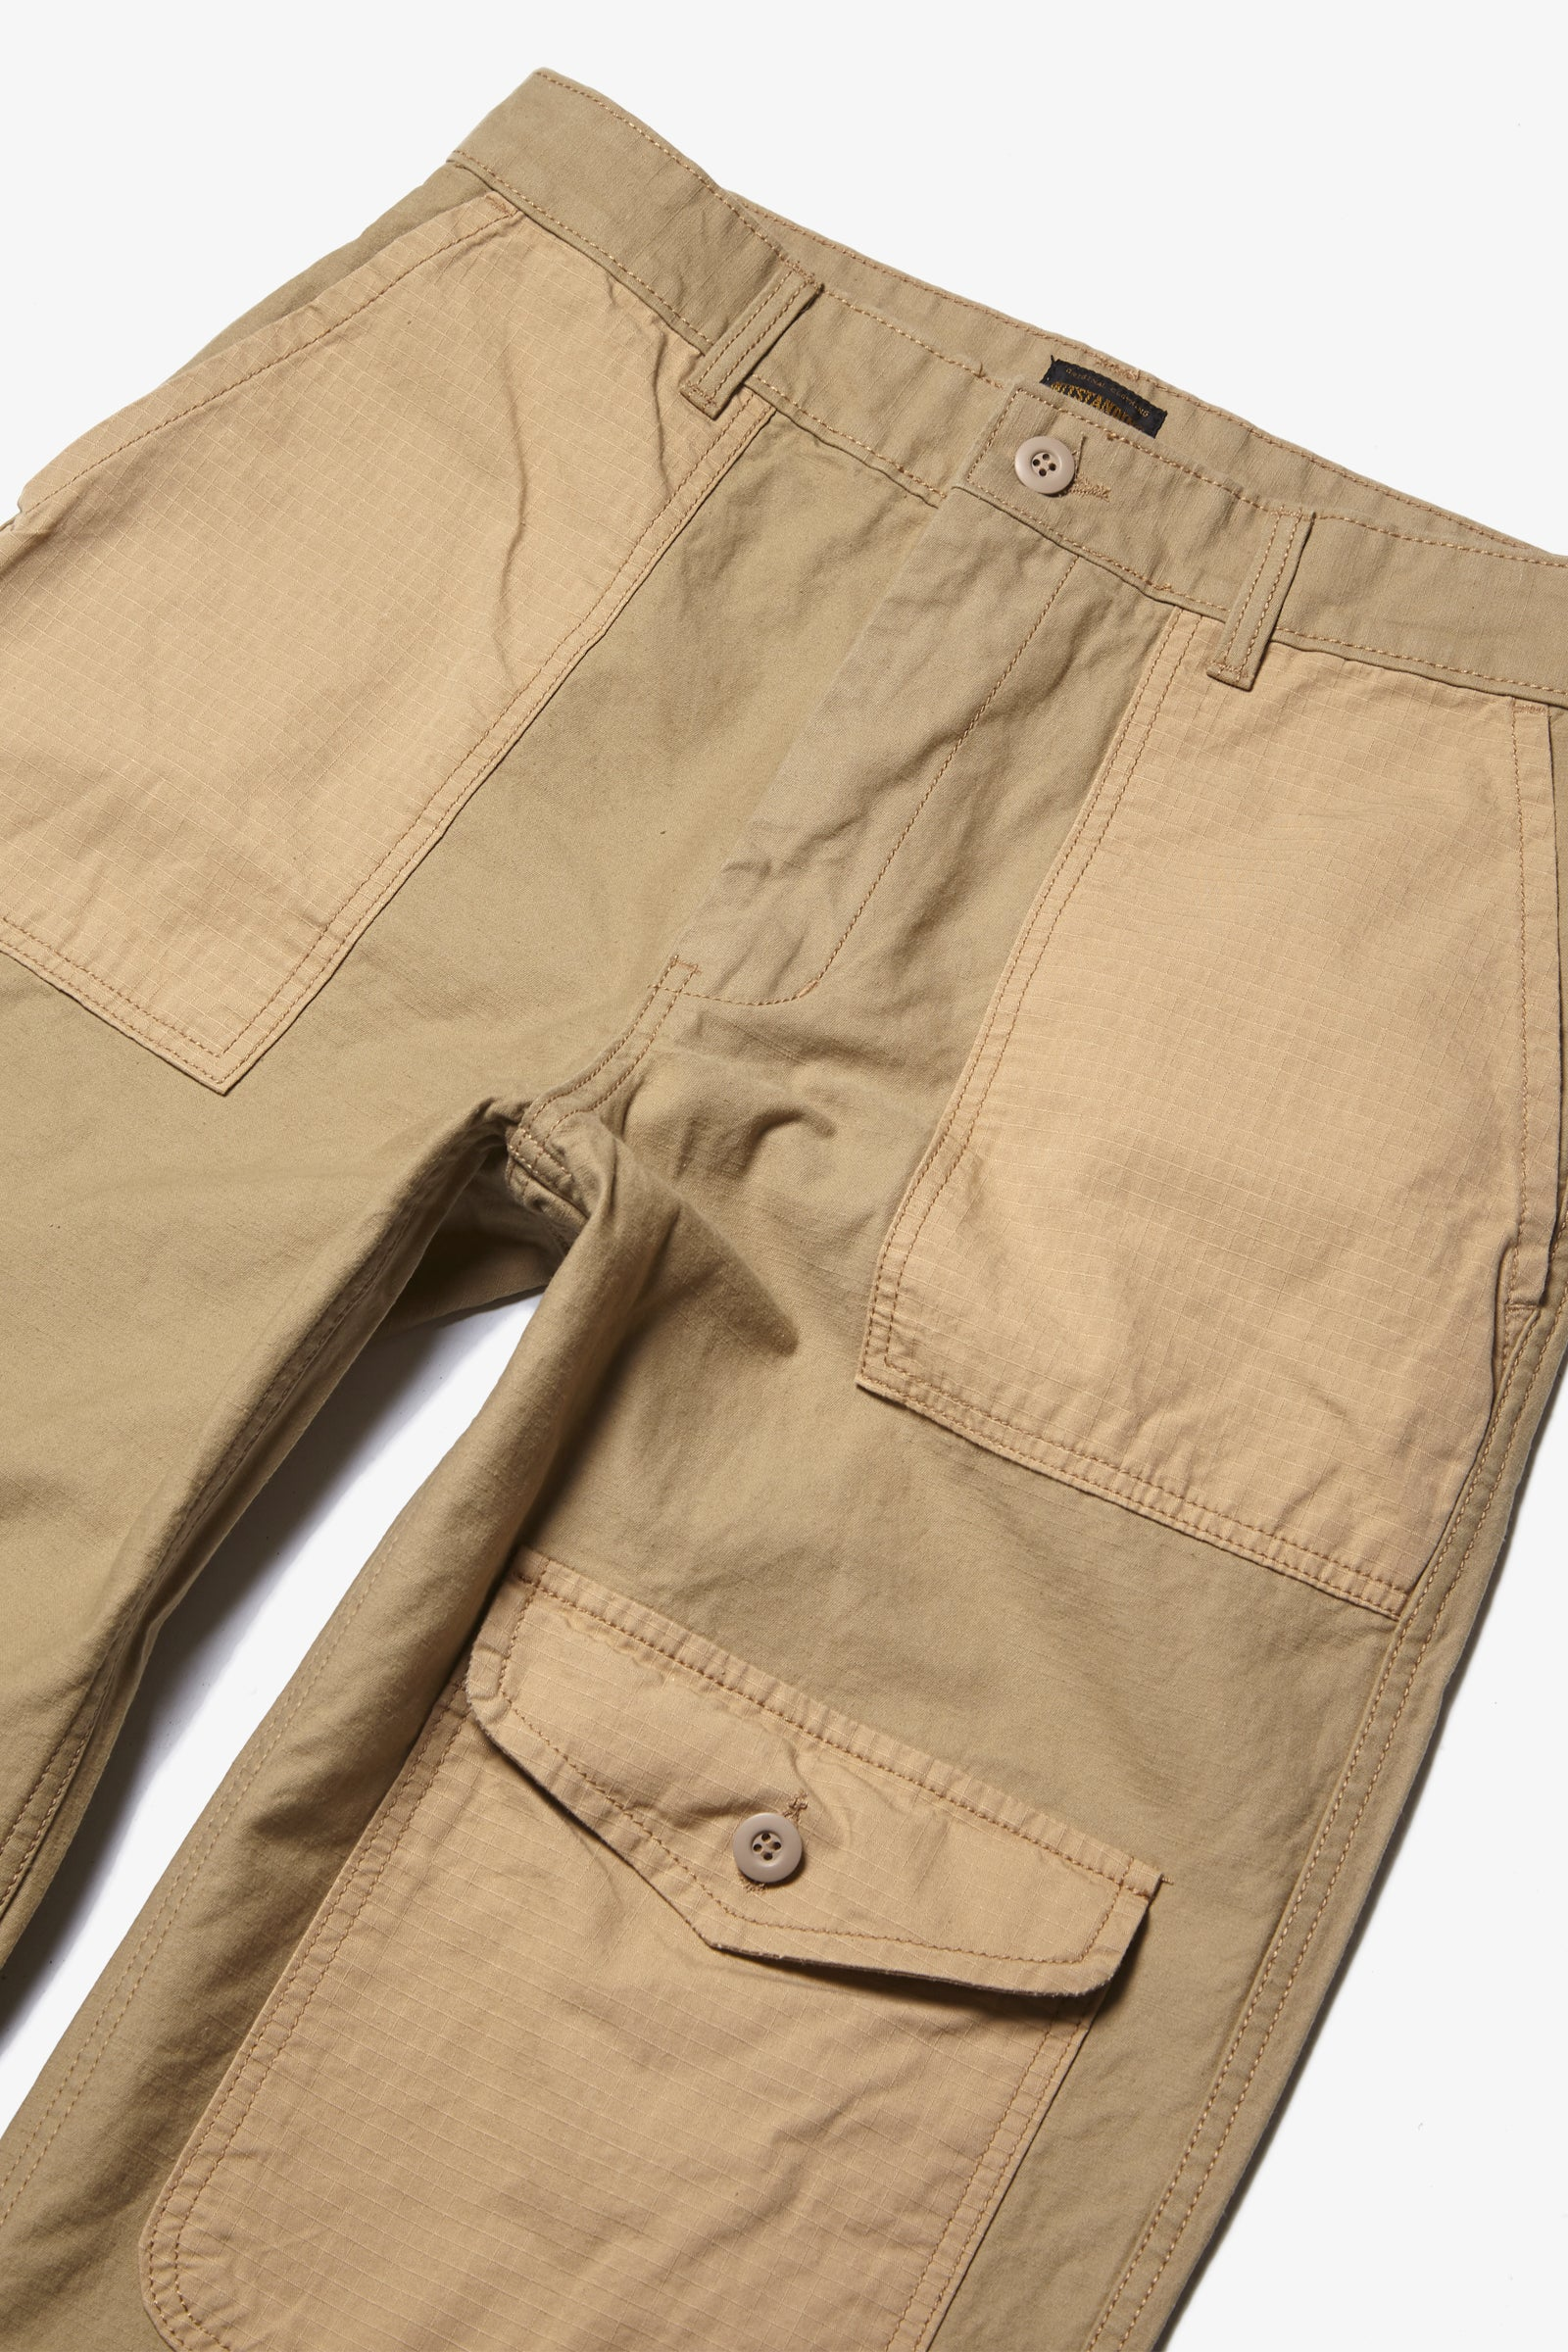 Outstanding & Co. - Fatigue Pocket Pants - Tan